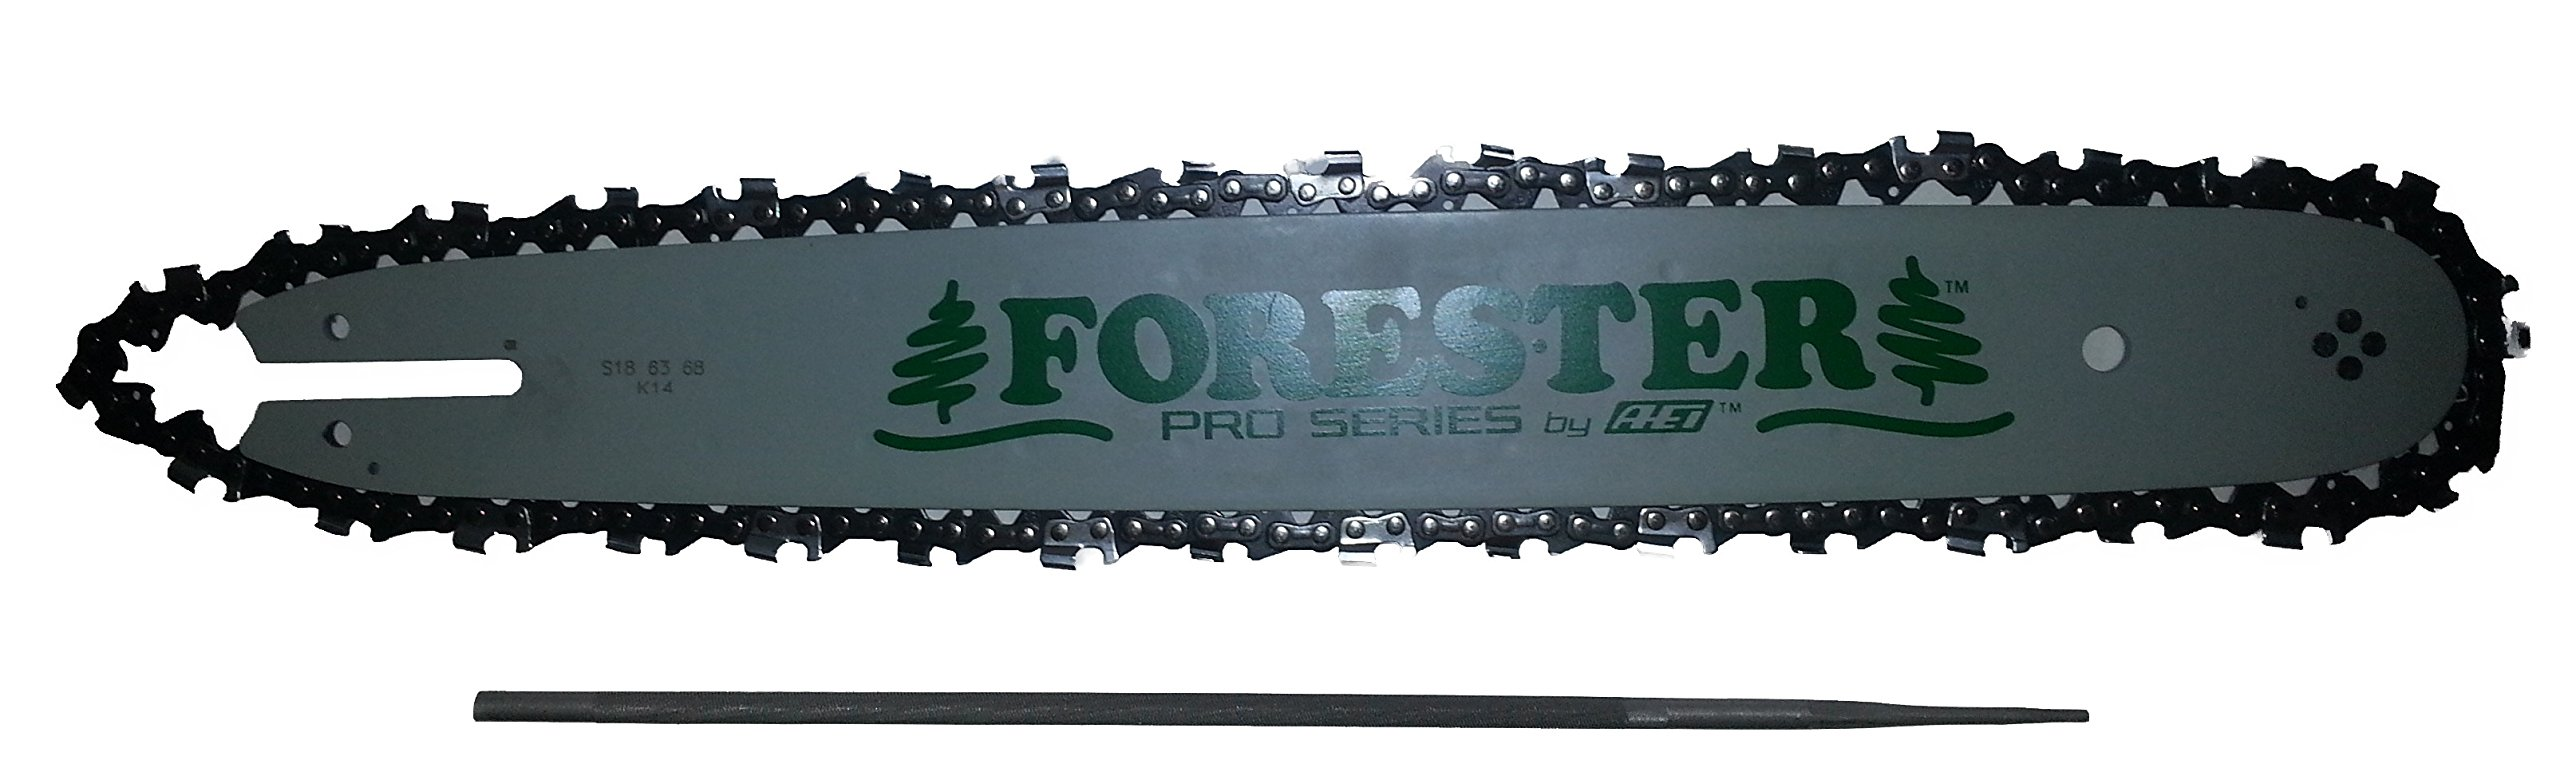 Forester 18'' Bar and Chain Combo Kit for Small Stihl Chainsaws .325 Pitch .063 Gauge Mount Including 3/16'' Round File 2 Piece Bundle by Forester